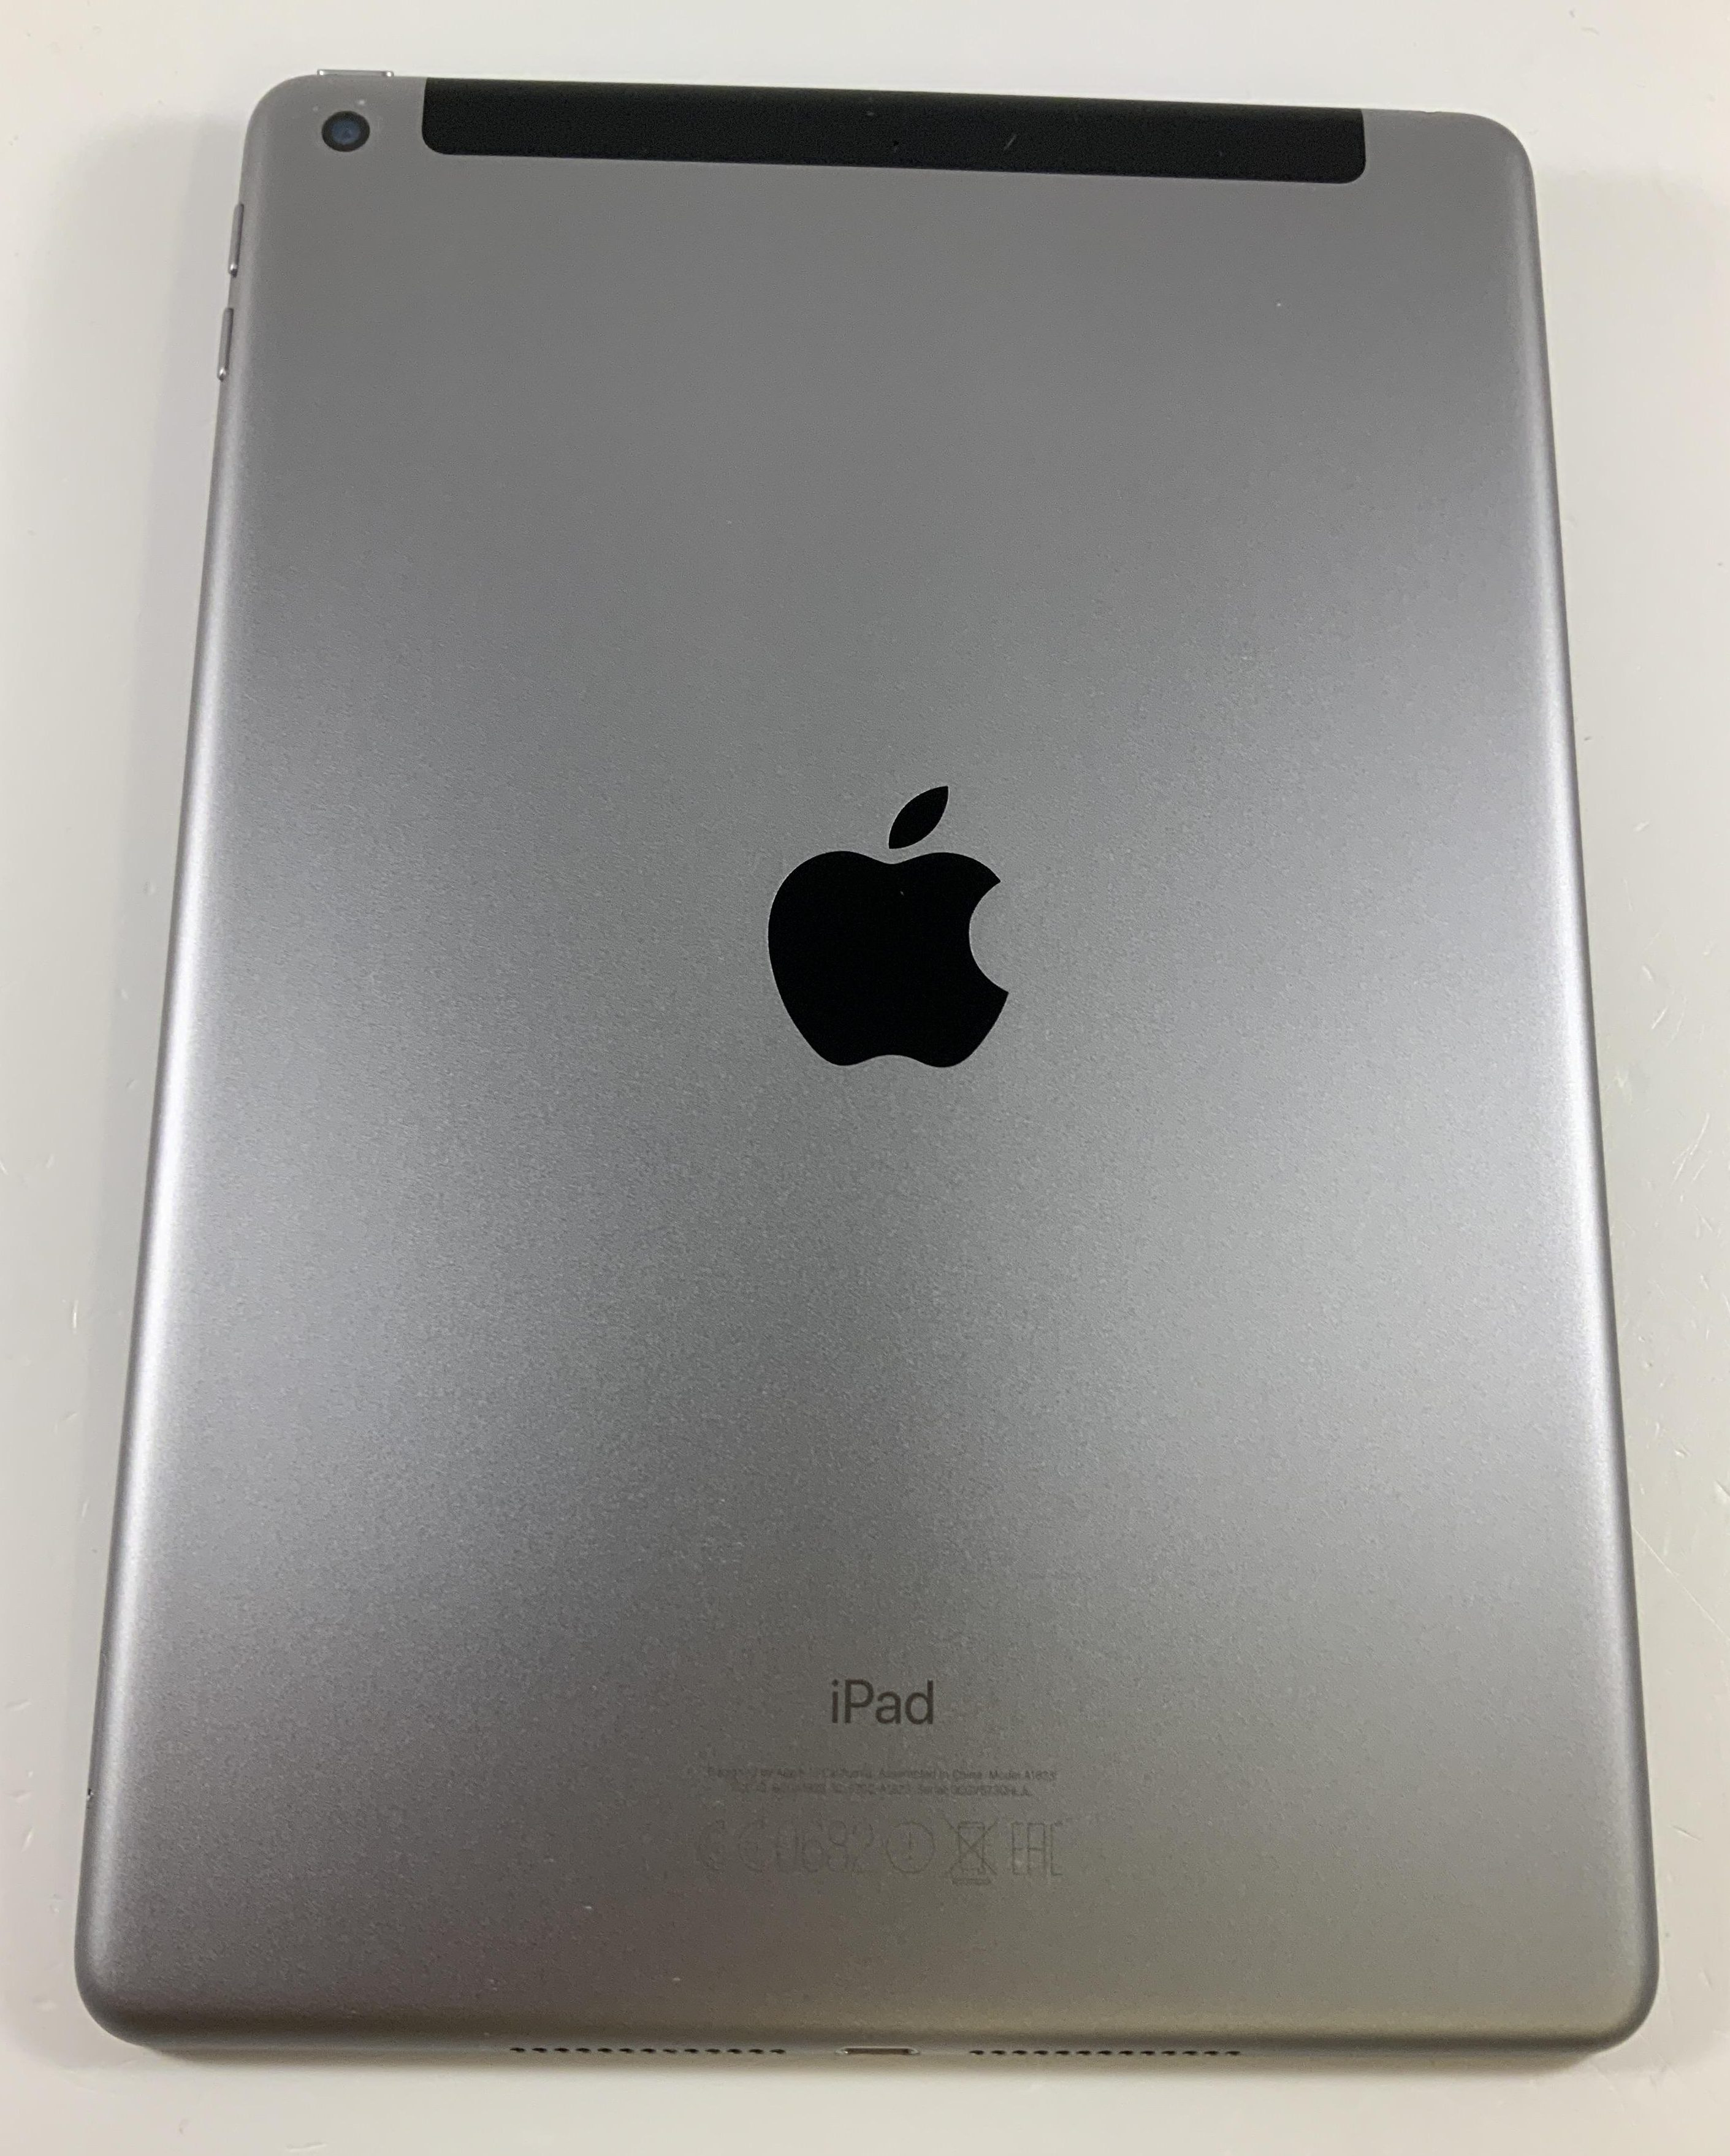 iPad 5 Wi-Fi + Cellular 128GB, 128GB, Space Gray, Afbeelding 2